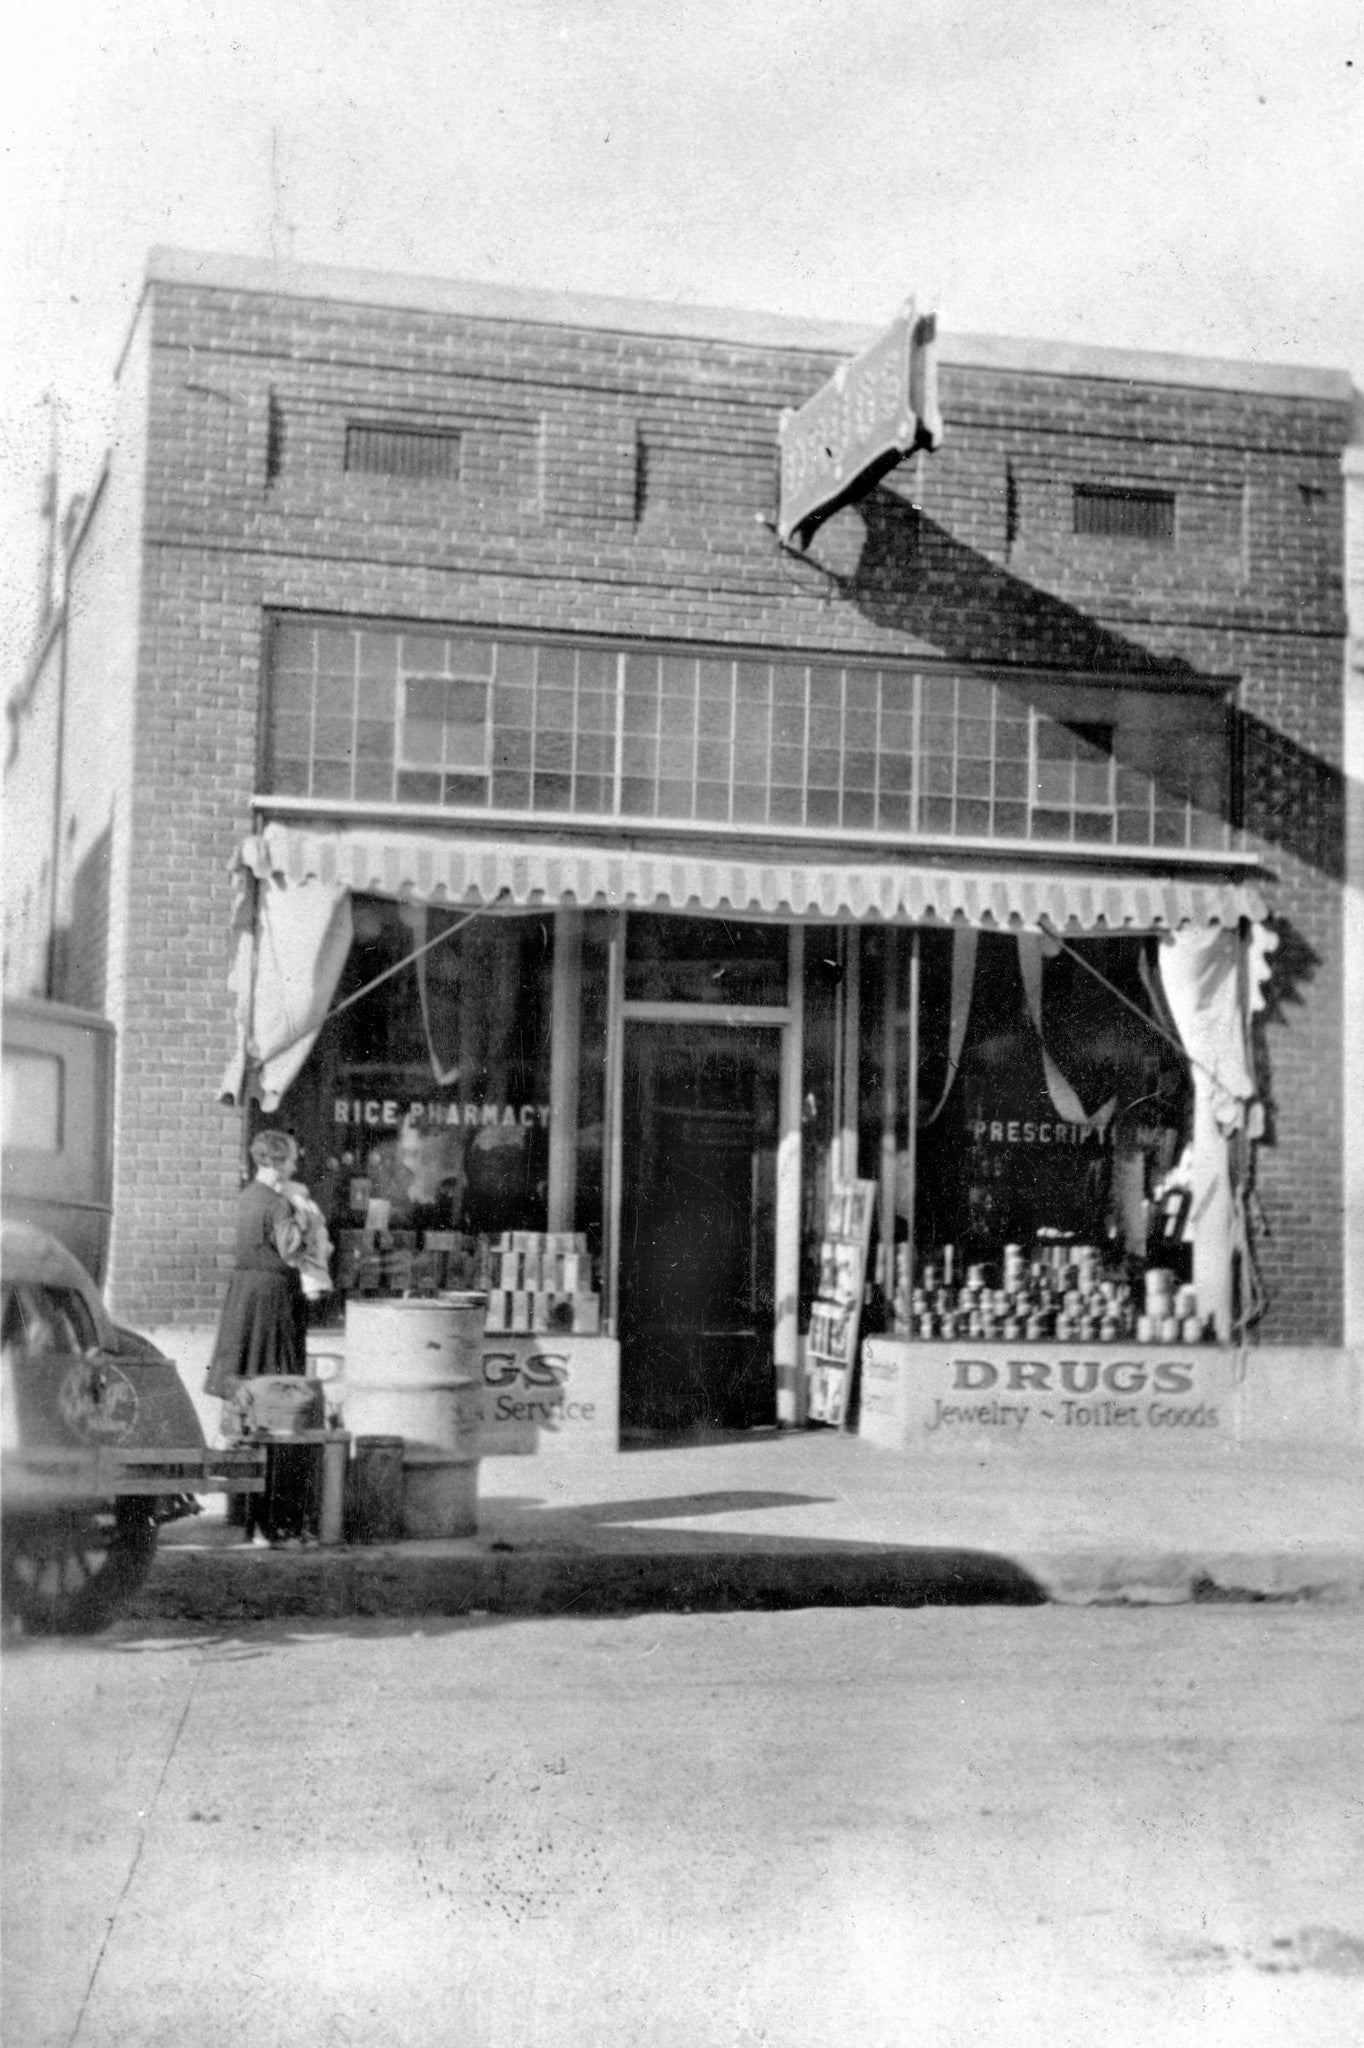 Meridian - Rice Pharmacy 1926